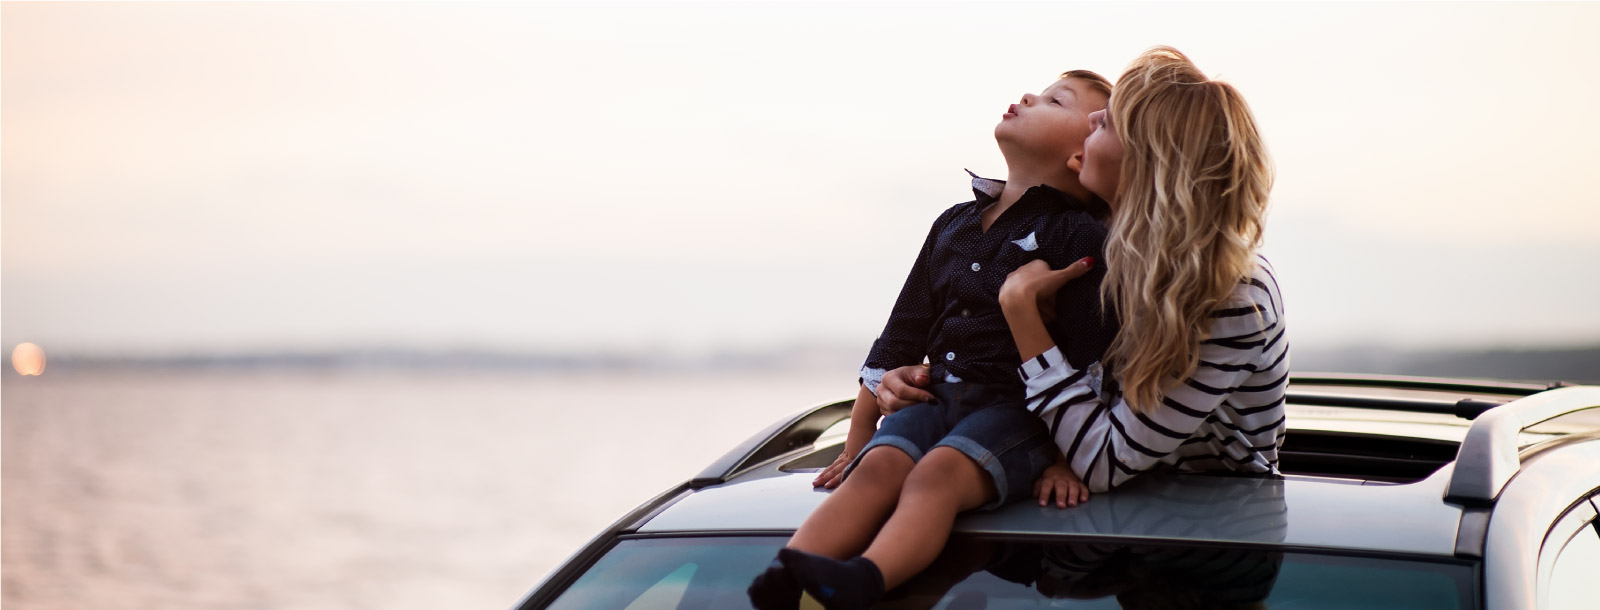 Mother and son out of the sunroof of a car